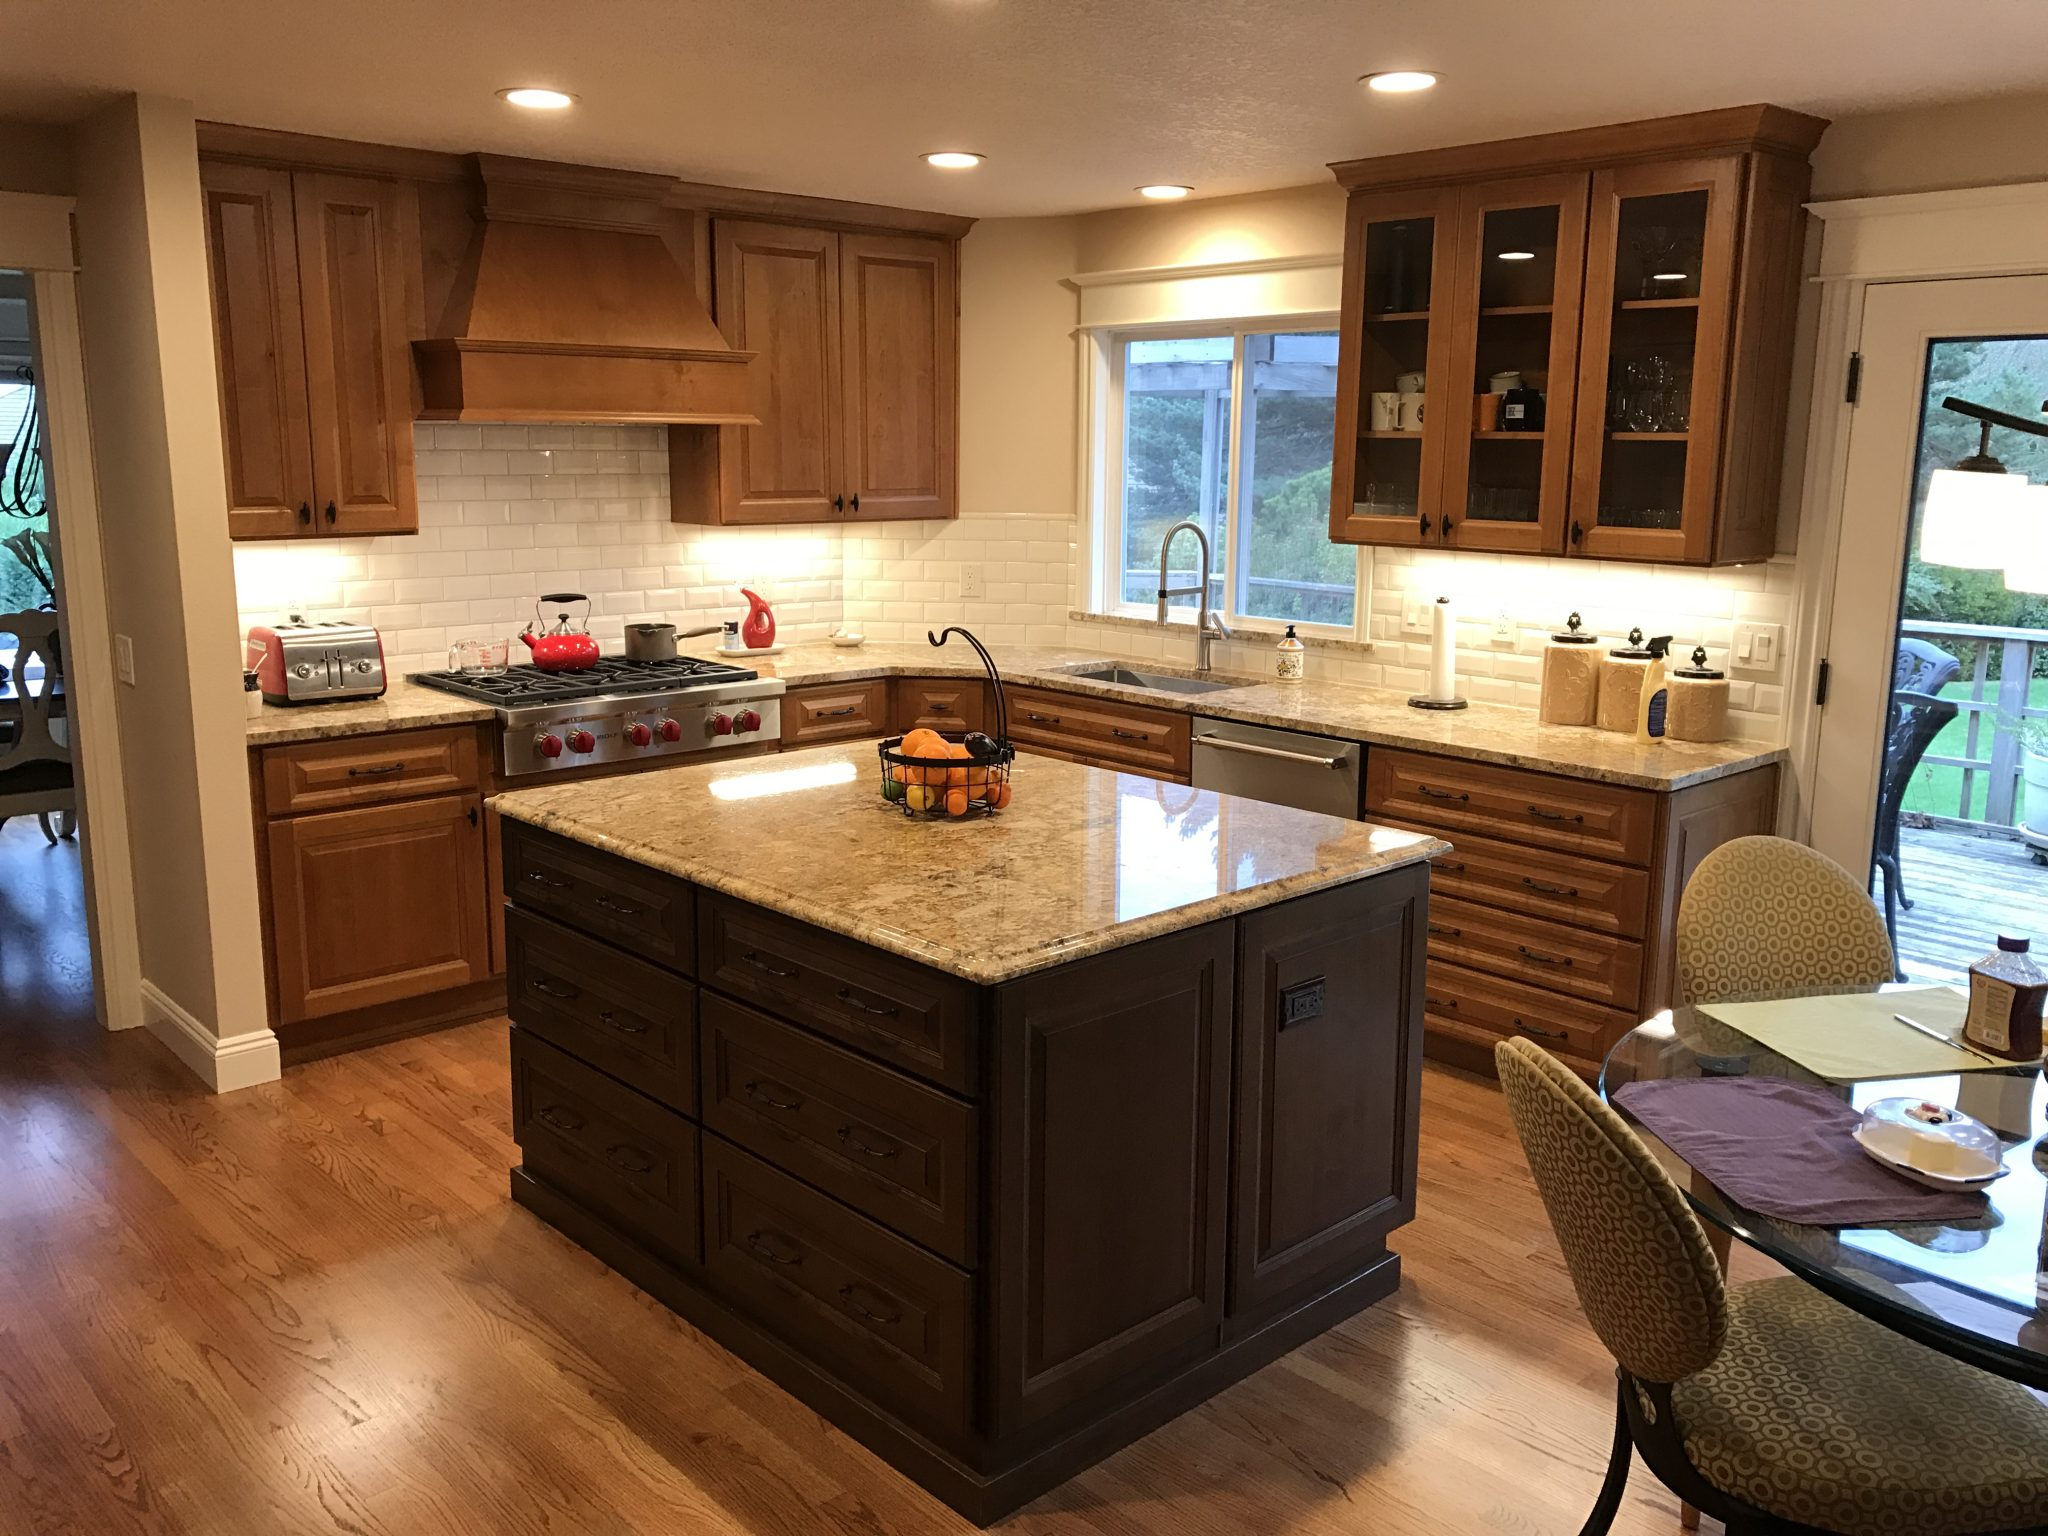 Kitchen Cabinets And Countertops Premier Kitchens And Cabinets